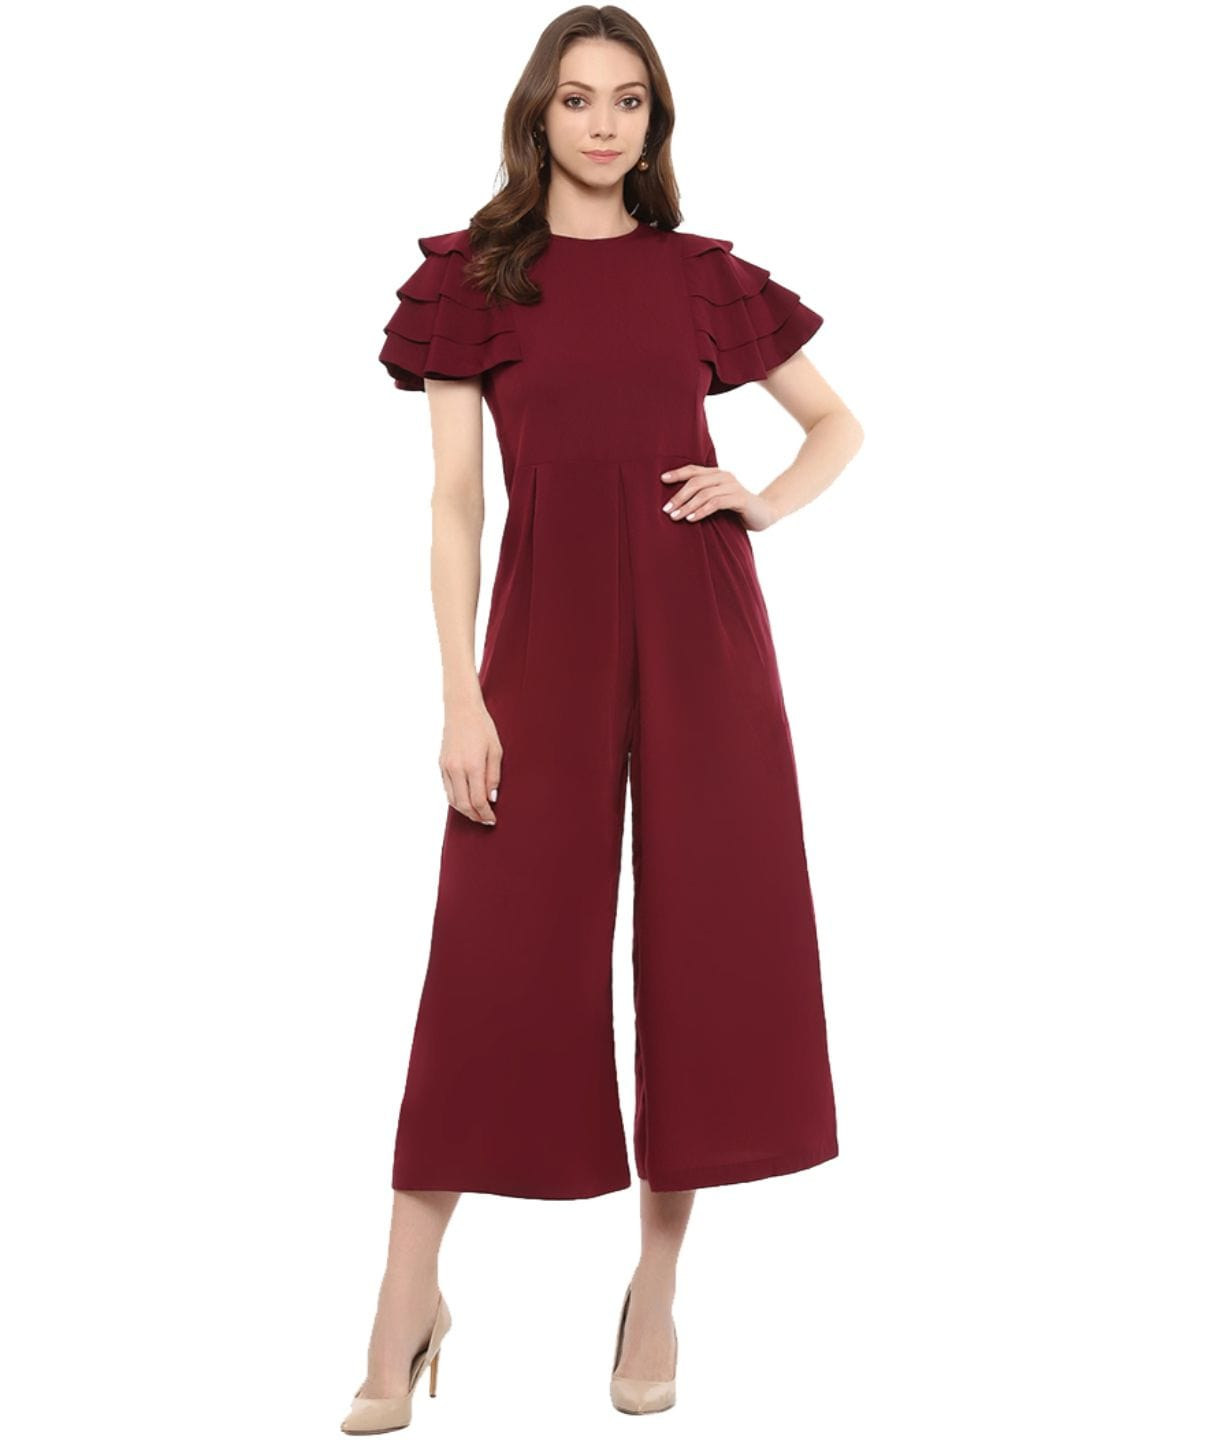 Uptownie Maroon Solid Relaxed Fit Culotte Jumpsuit With Ruffled Sleeves